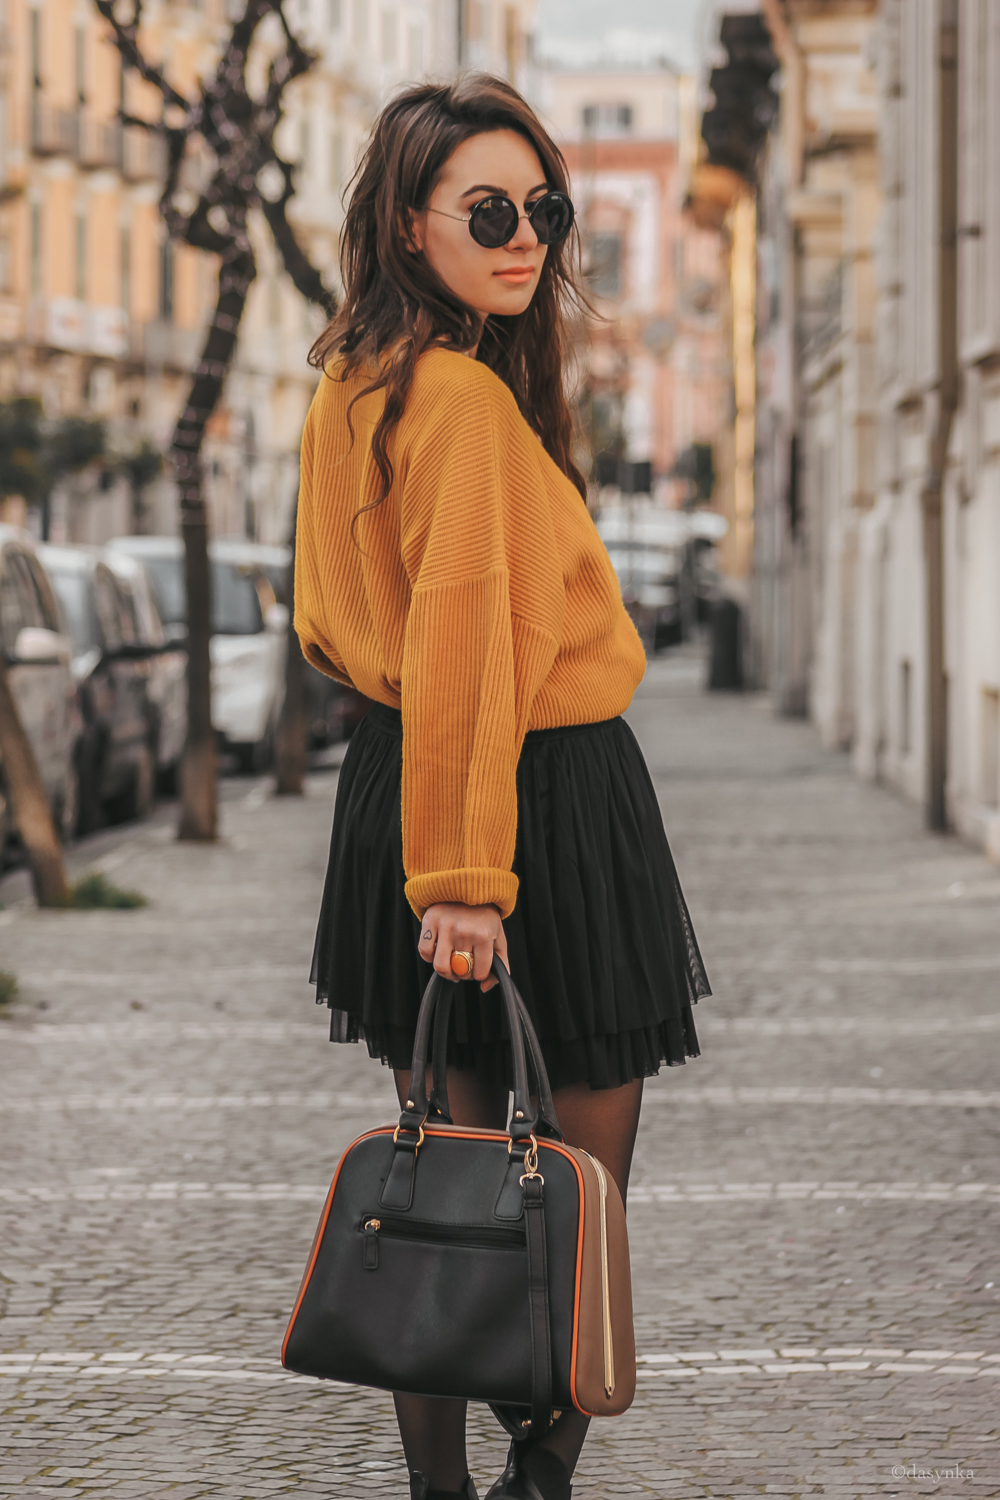 dasynka-fashion-blog-blogger-influencer-inspiration-women-ootd-inspo-outfit-shooting-model-globettrotter-travel-girl-lookbook-instagram-long-hair-street-style-casual-italy-lifestyle-look-outfit-poses-yellow-sweater-skirt-boots-jewelry-gold-sunnies-sunglasses-zara-hm-asos-tights-chiffon-inspo-casual-oversize-autumn-spring-classic-comfy